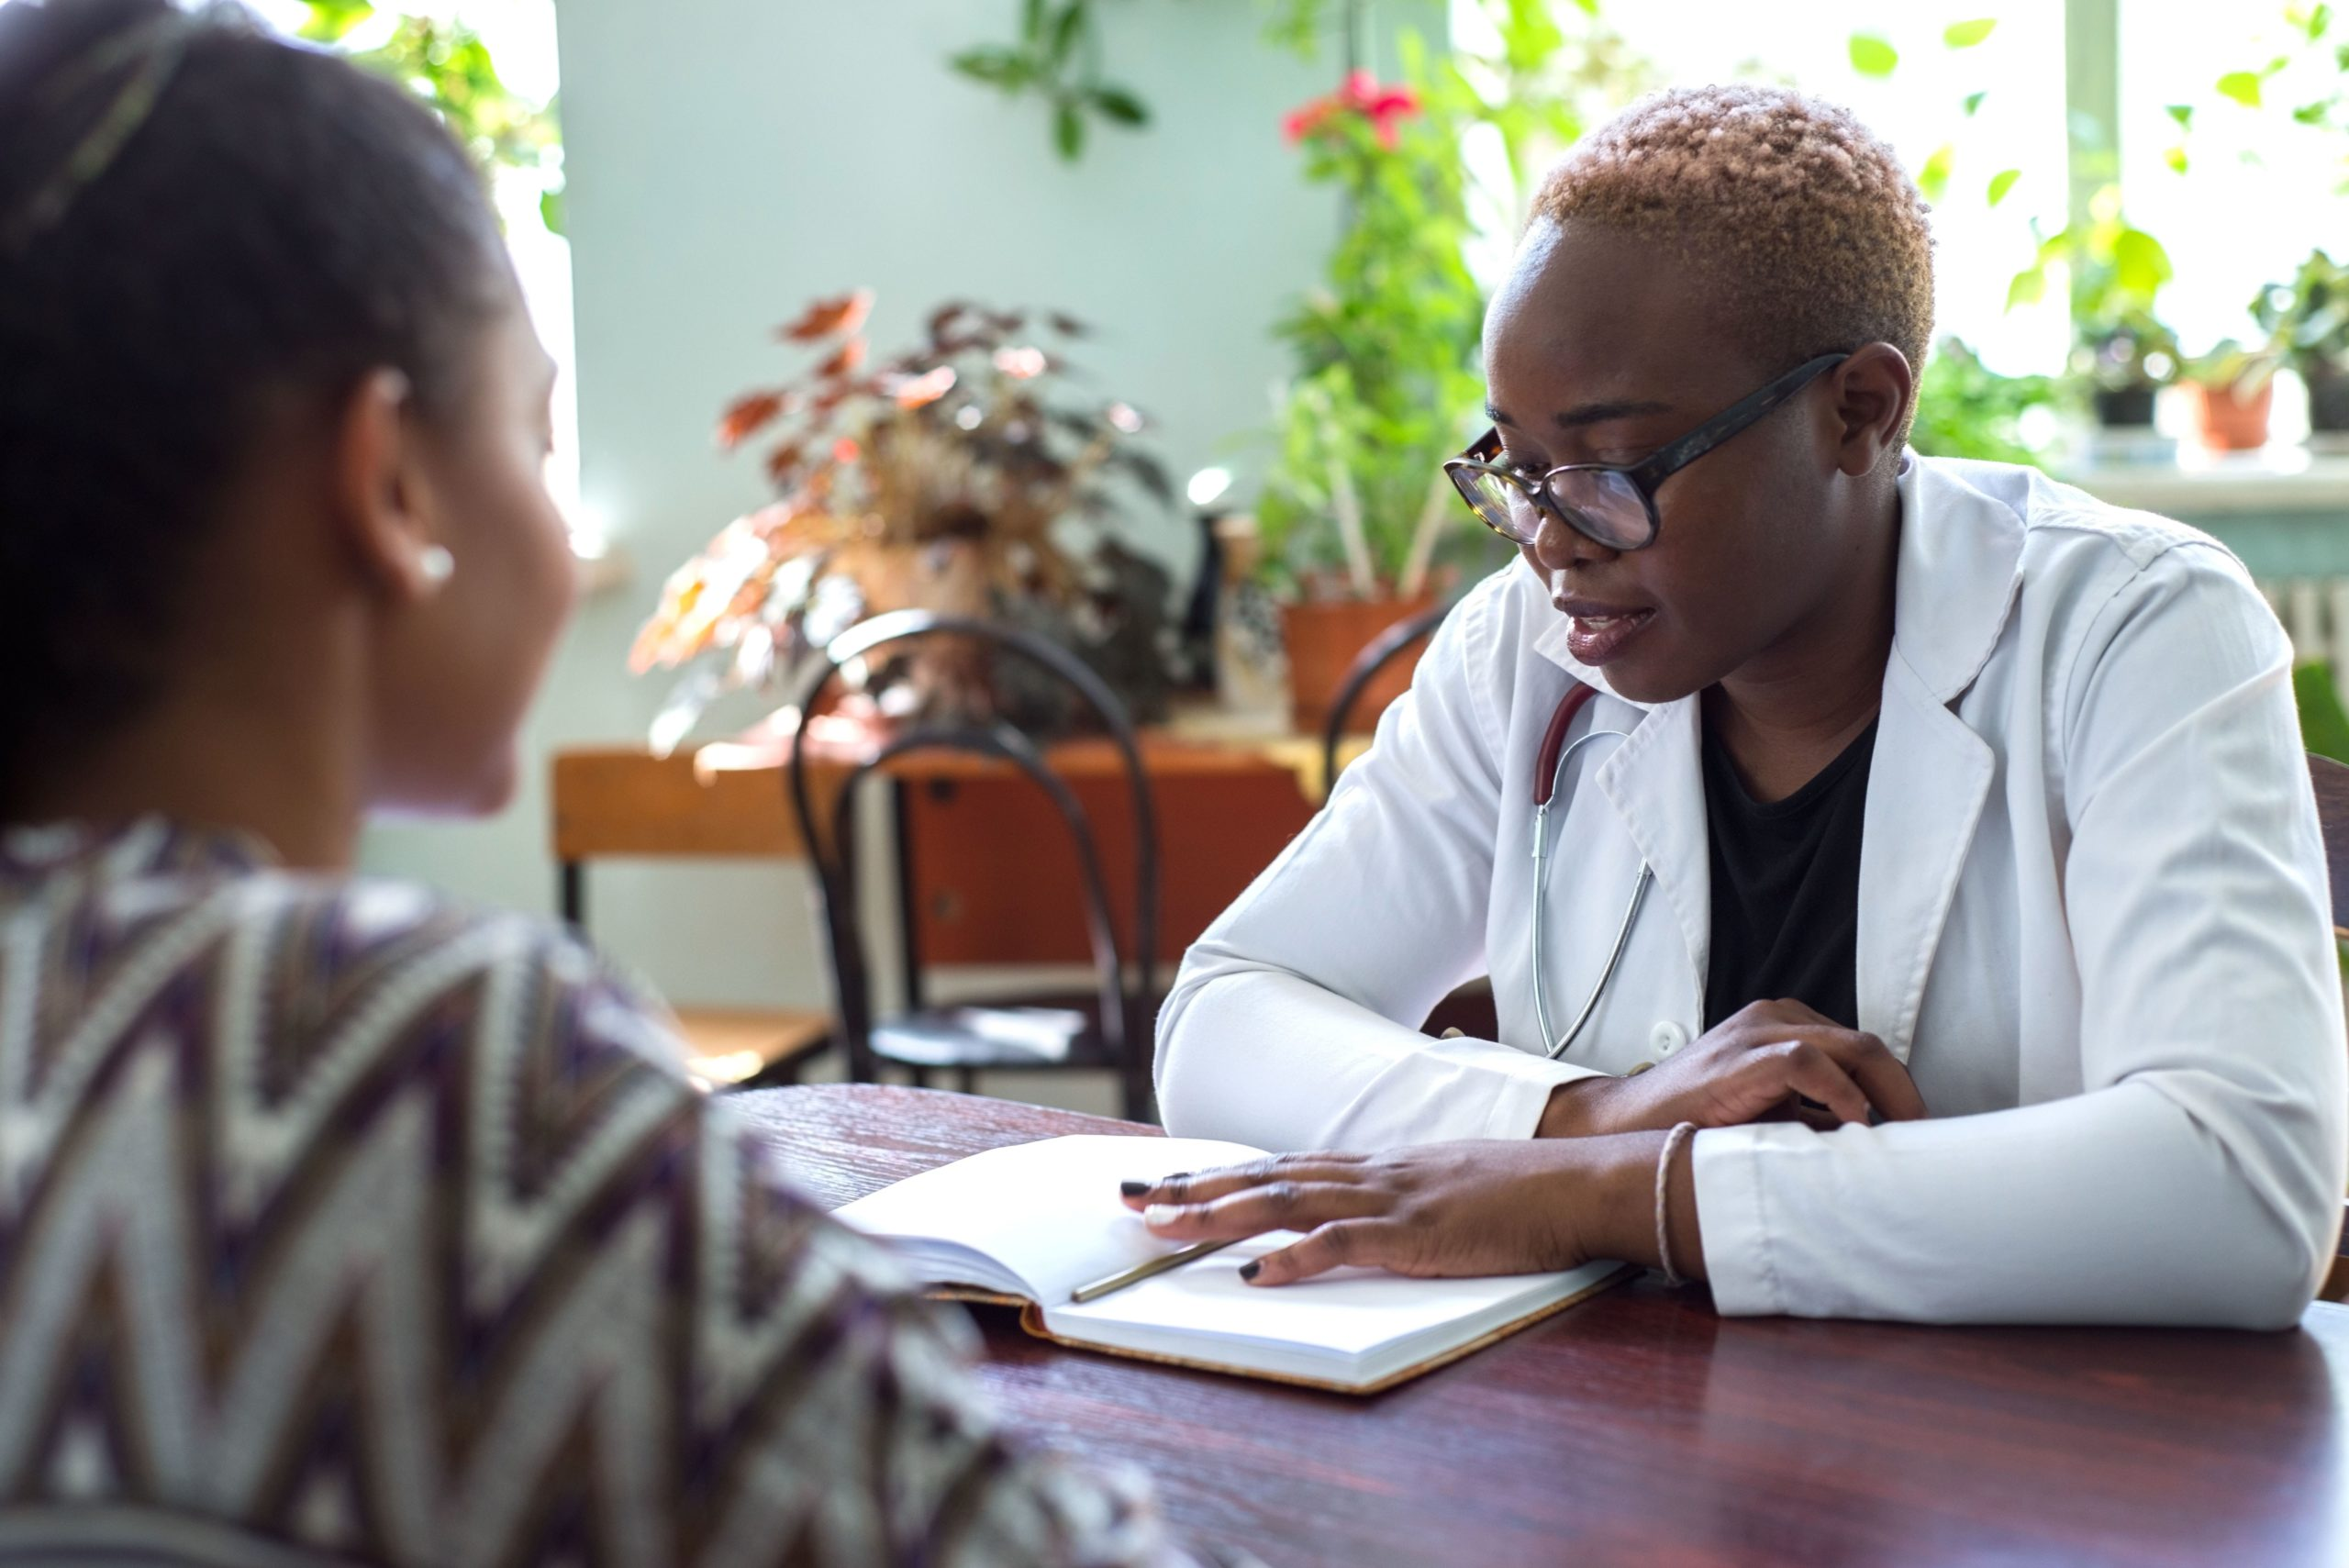 A woman consults a doctor in a white lab coat about the results of her COVID-19 test. Whatever happens next, she can rest at ease, knowing her funeral insurance cover will pay-out to her family if she succumbs to the coronavirus.